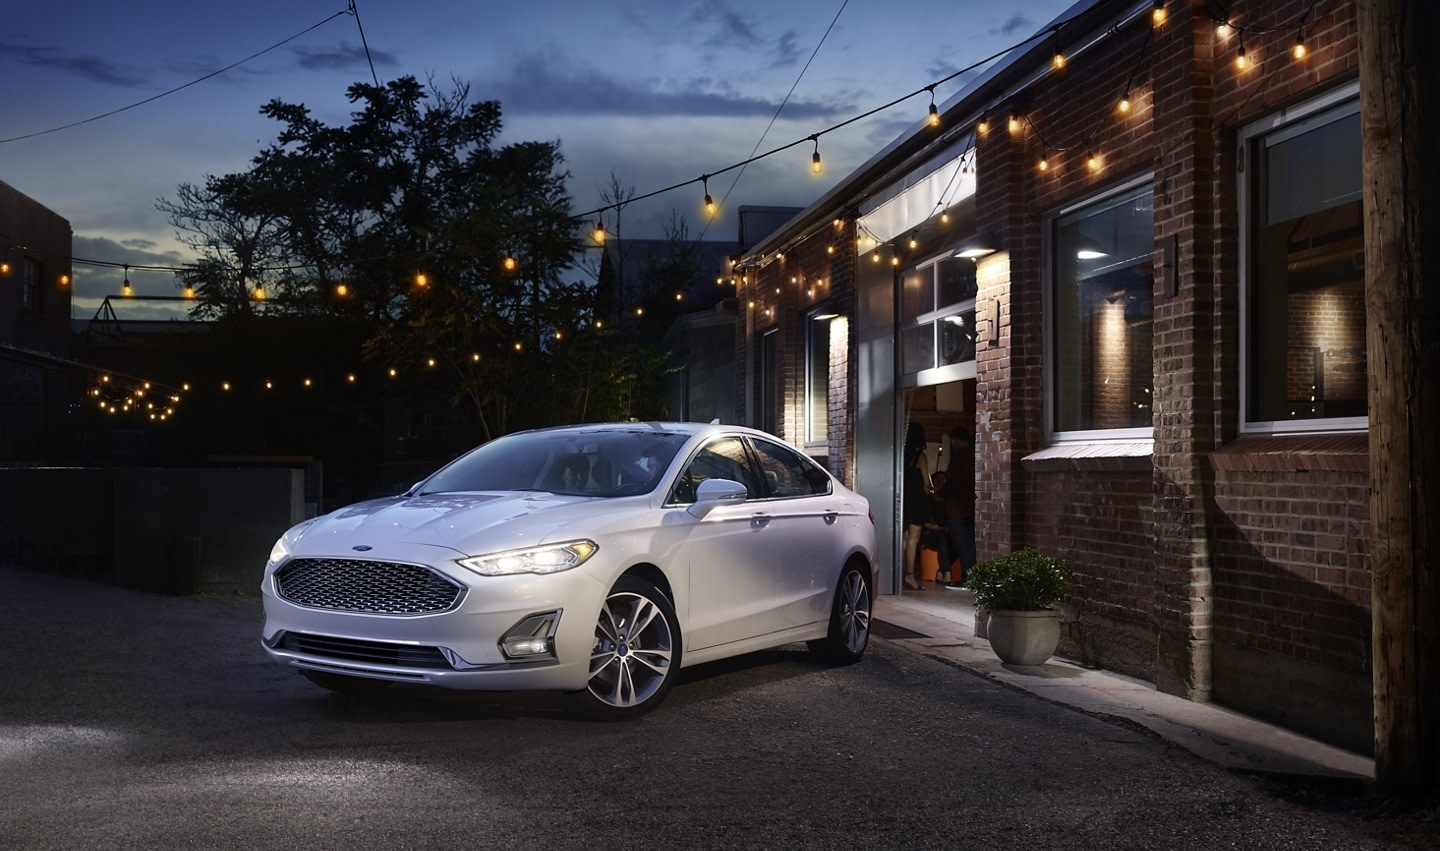 2020 Ford Fusion Lease near Fort Knox, KY